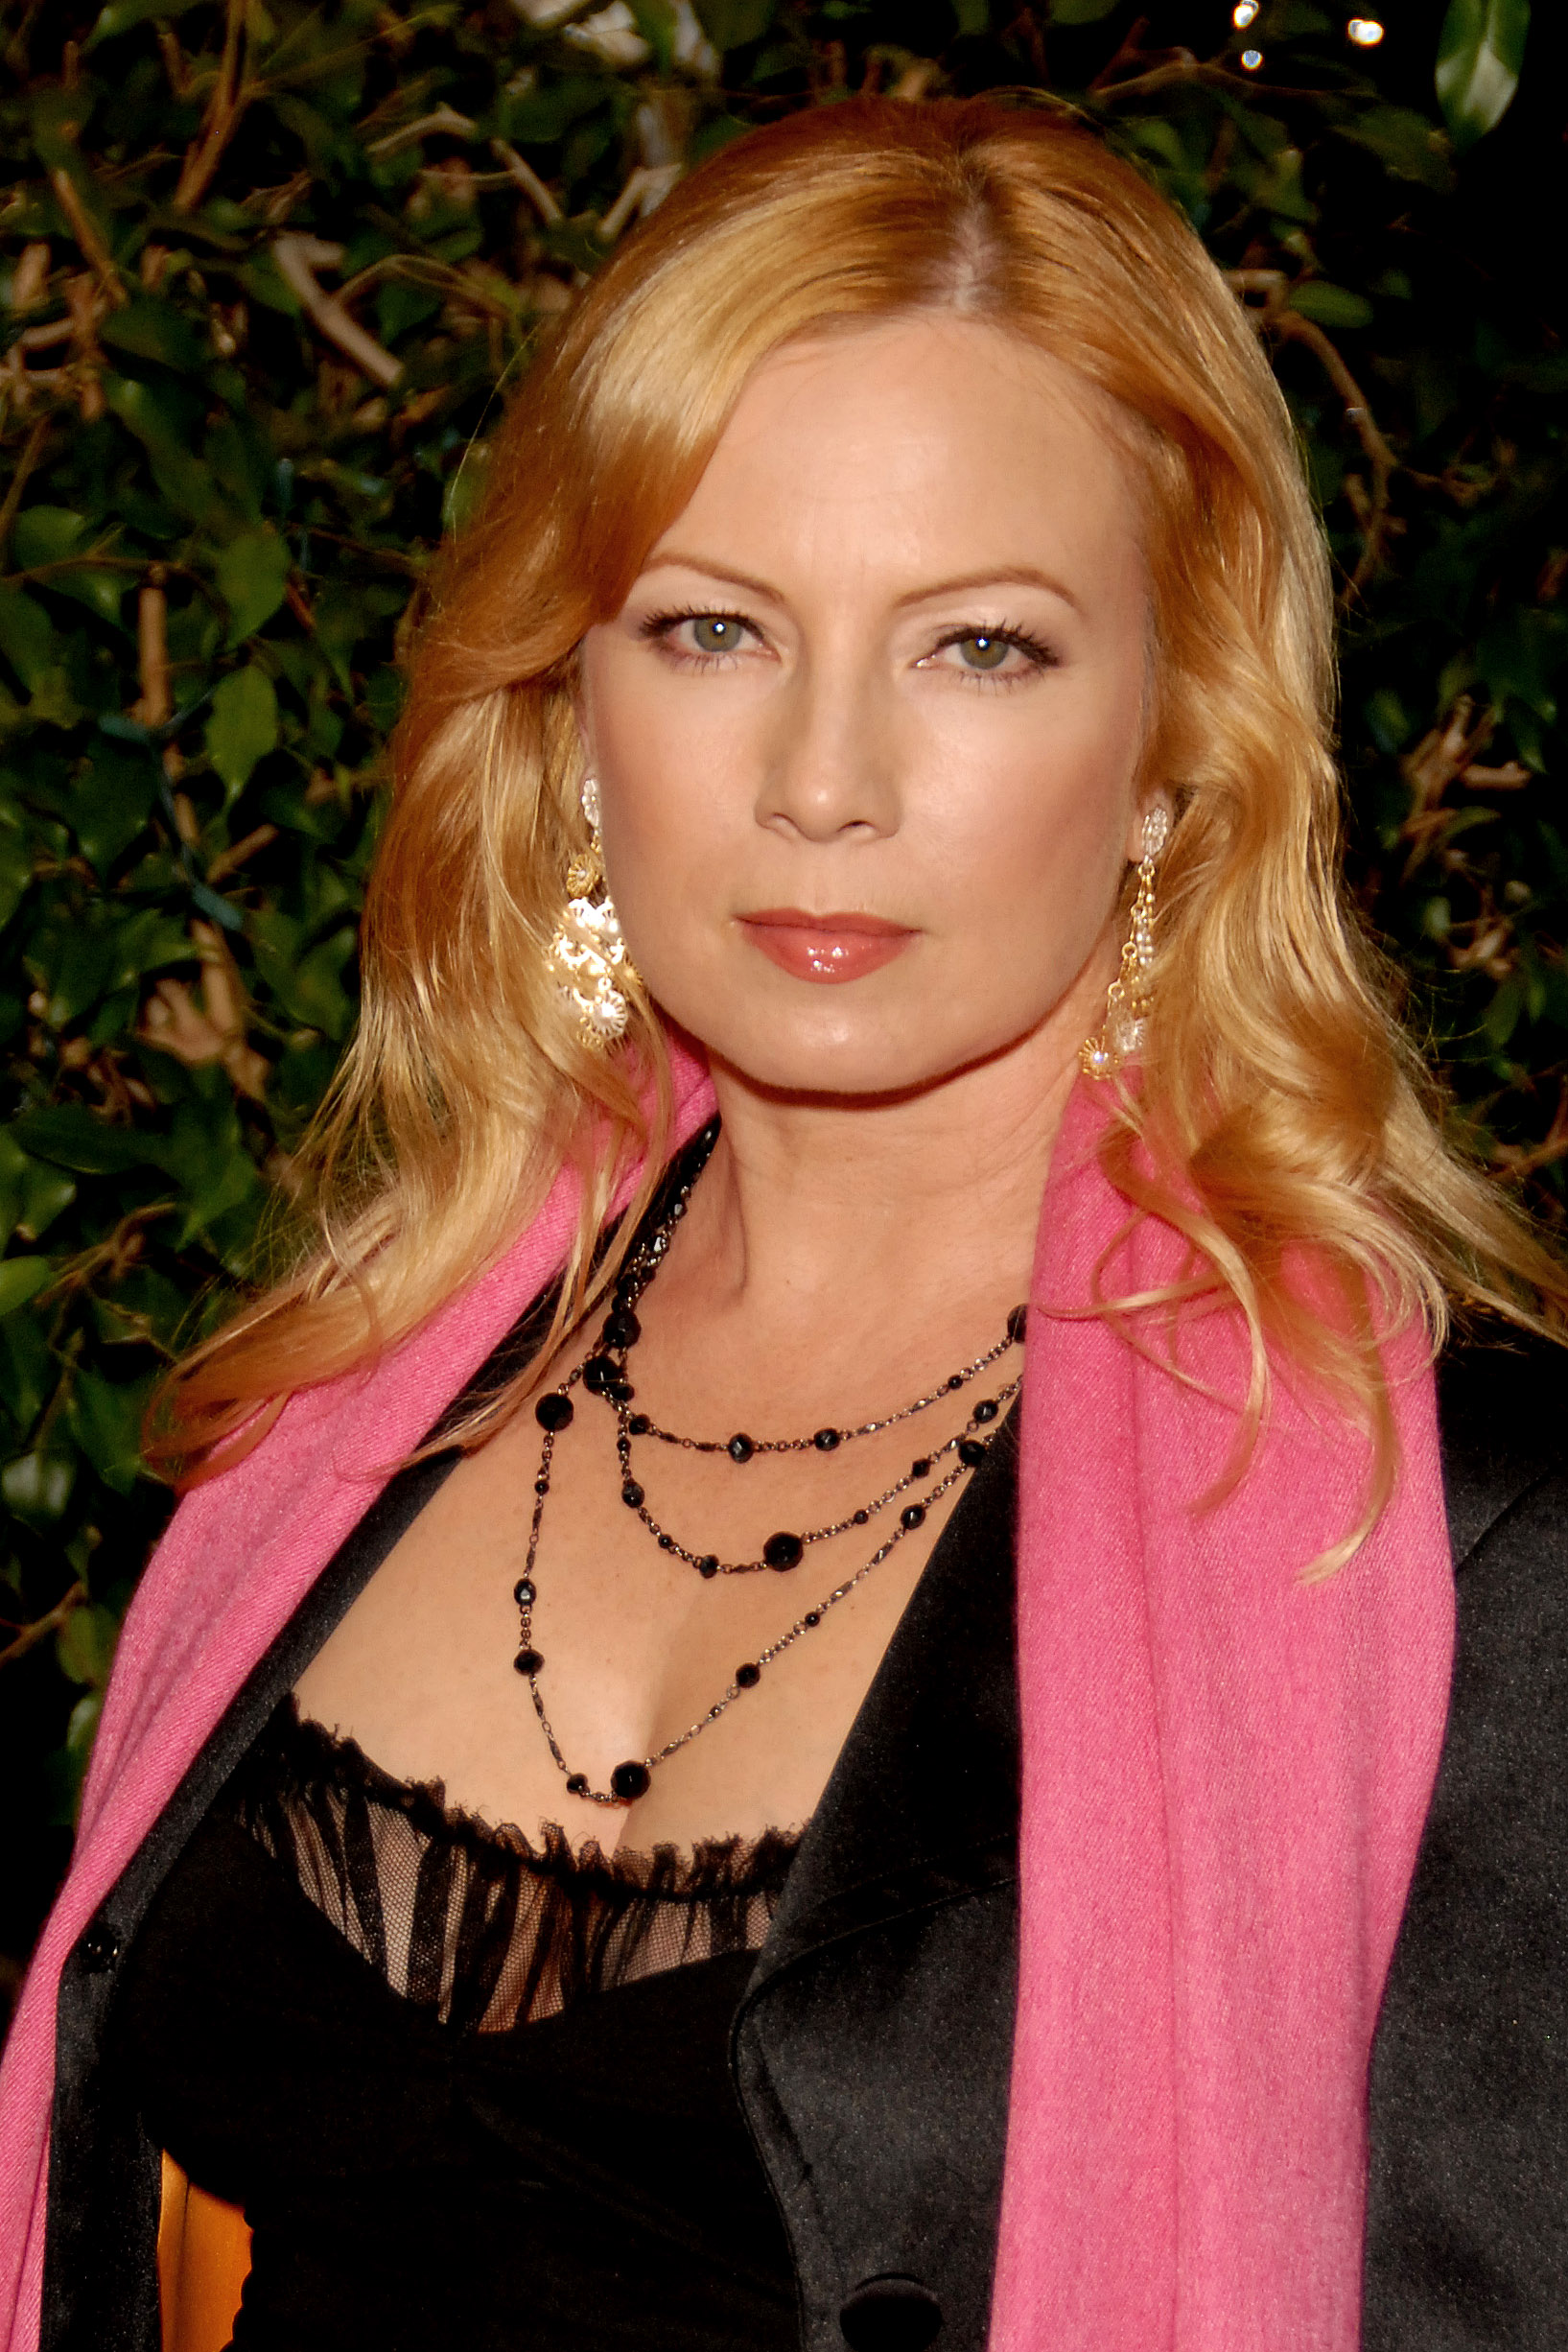 Ginger Lynn Filmography within traci lords - alchetron, the free social encyclopedia